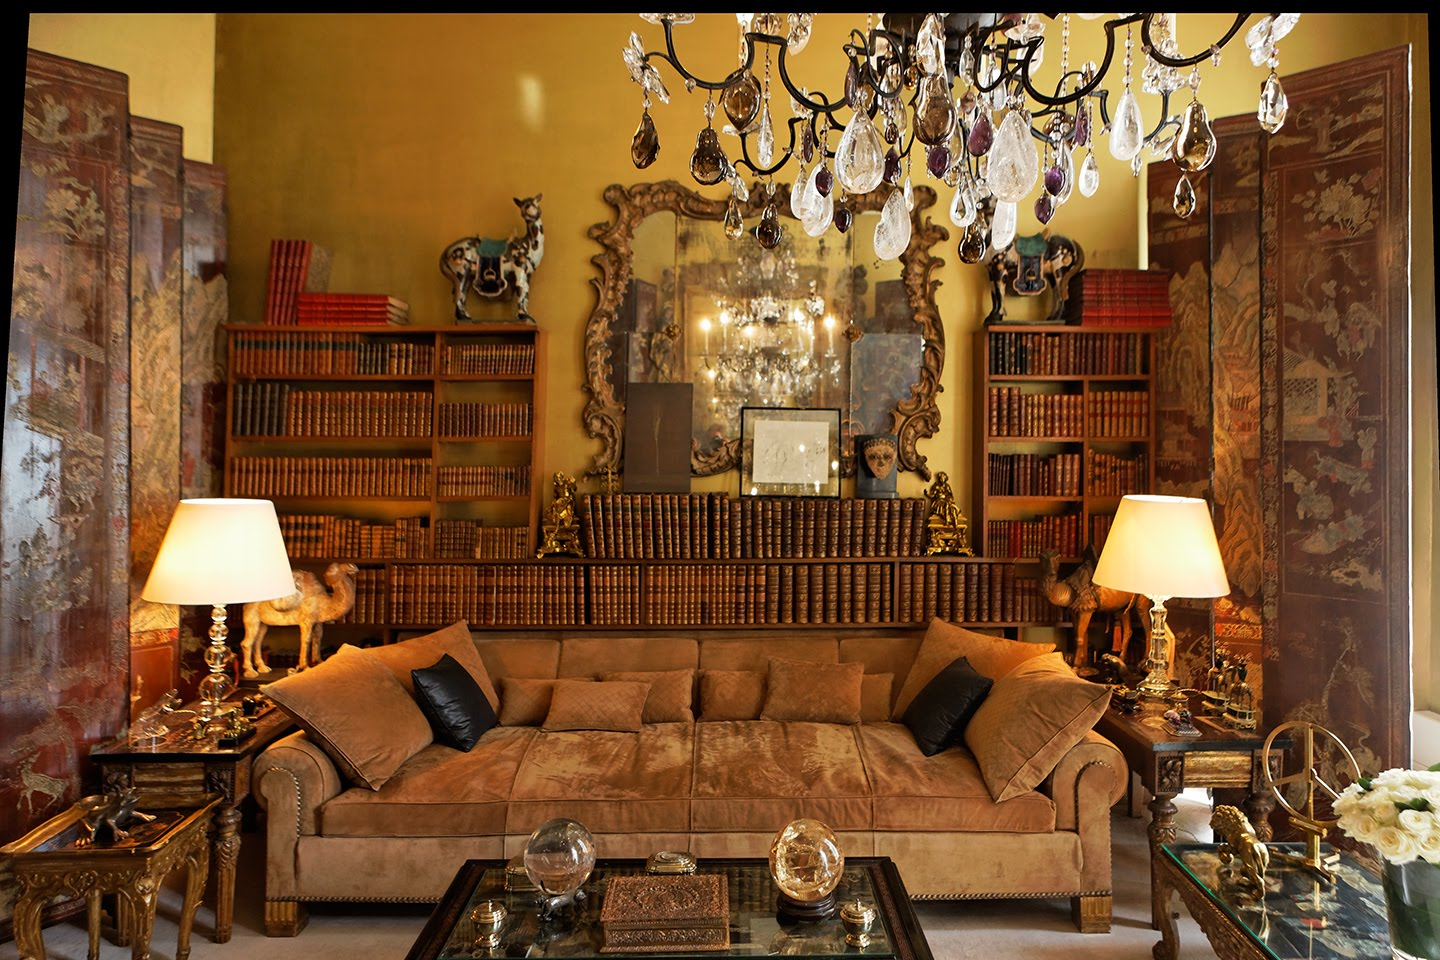 tour coco chanel's private apartment in paris | blog purentonline